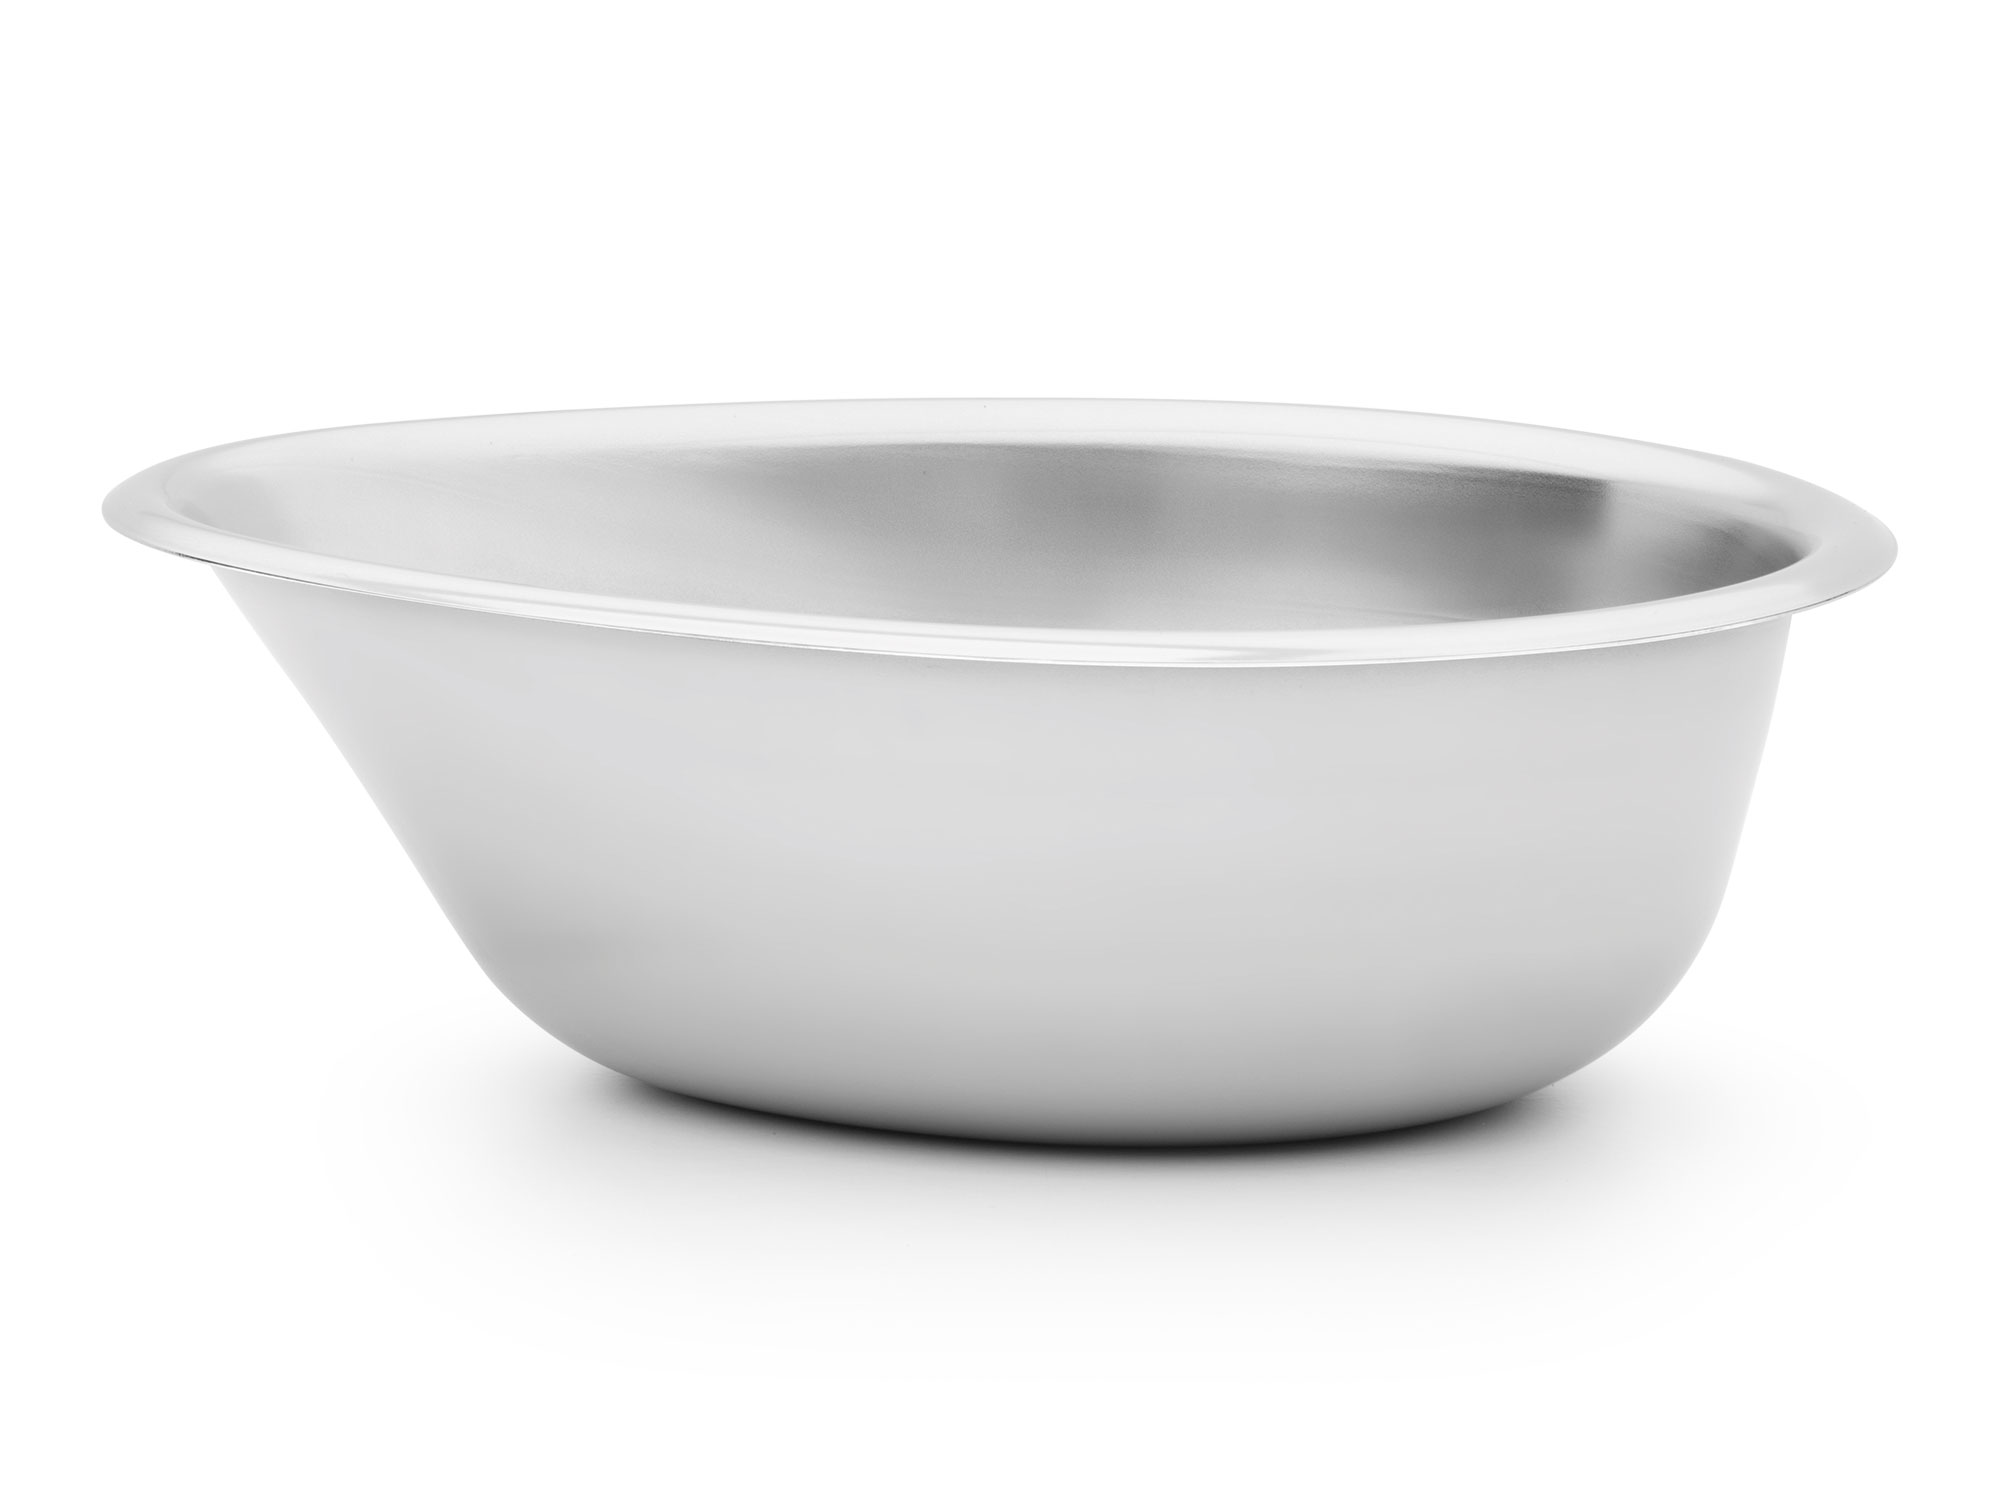 Steel pet bowl design.